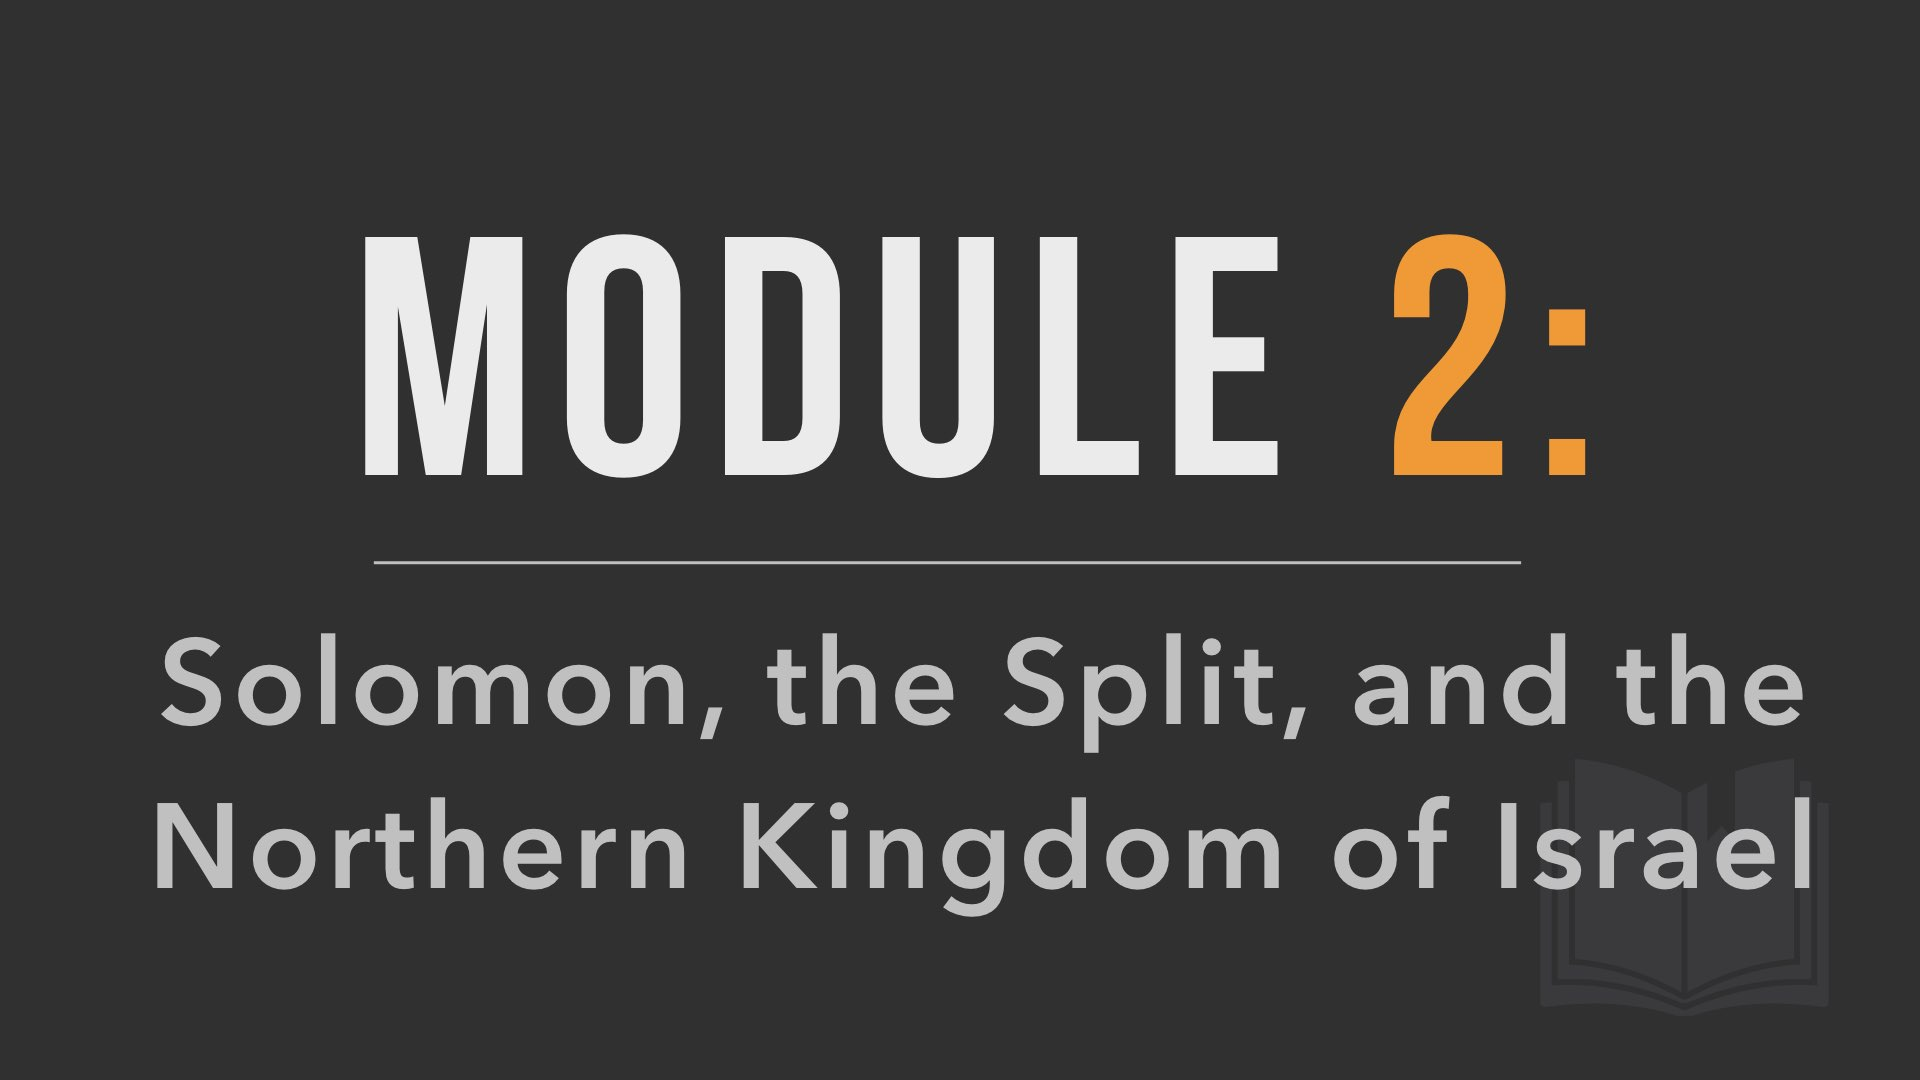 Module 2 Poster Image